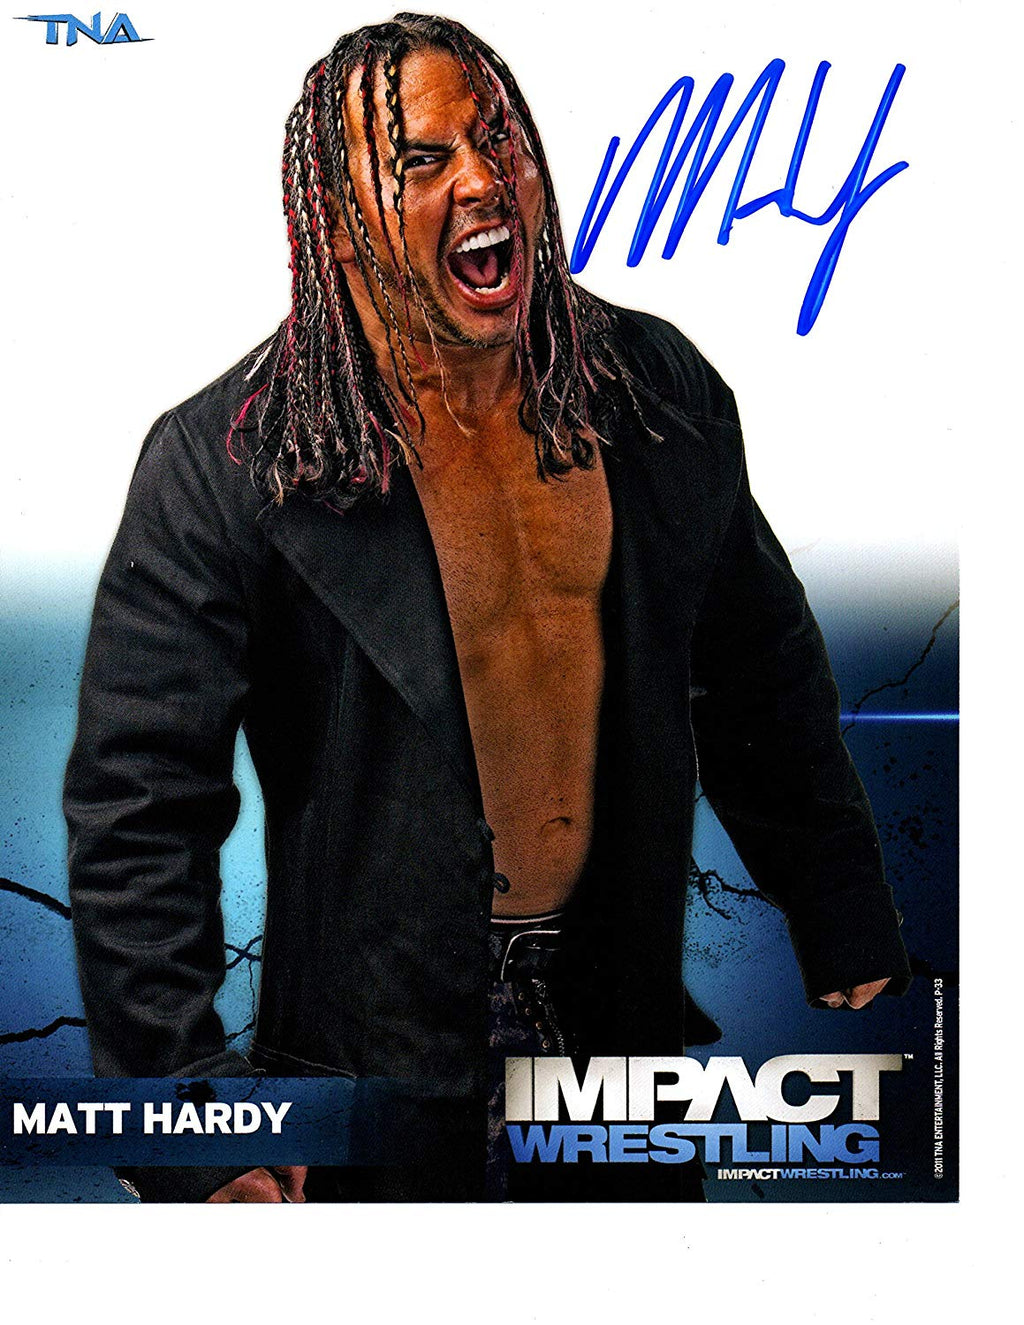 WWE Superstar Matt Hardy signed 8x10 photo